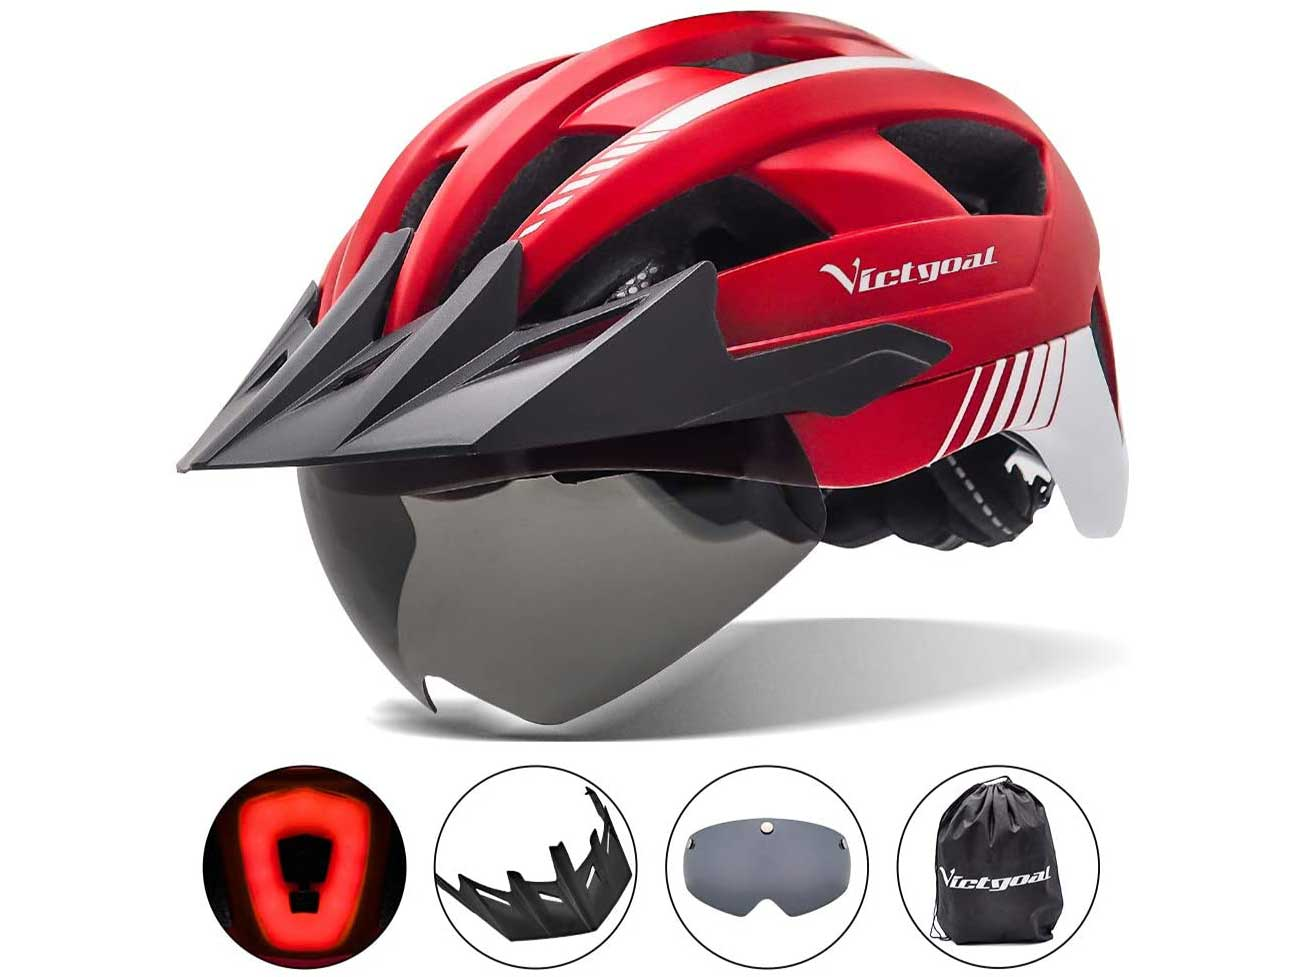 VICTGOAL Bike Helmet with USB Rechargeable Rear Light Detachable Magnetic Goggles Removable Sun Visor Mountain & Road Bicycle Helmets for Men Women Adult Cycling Helmets